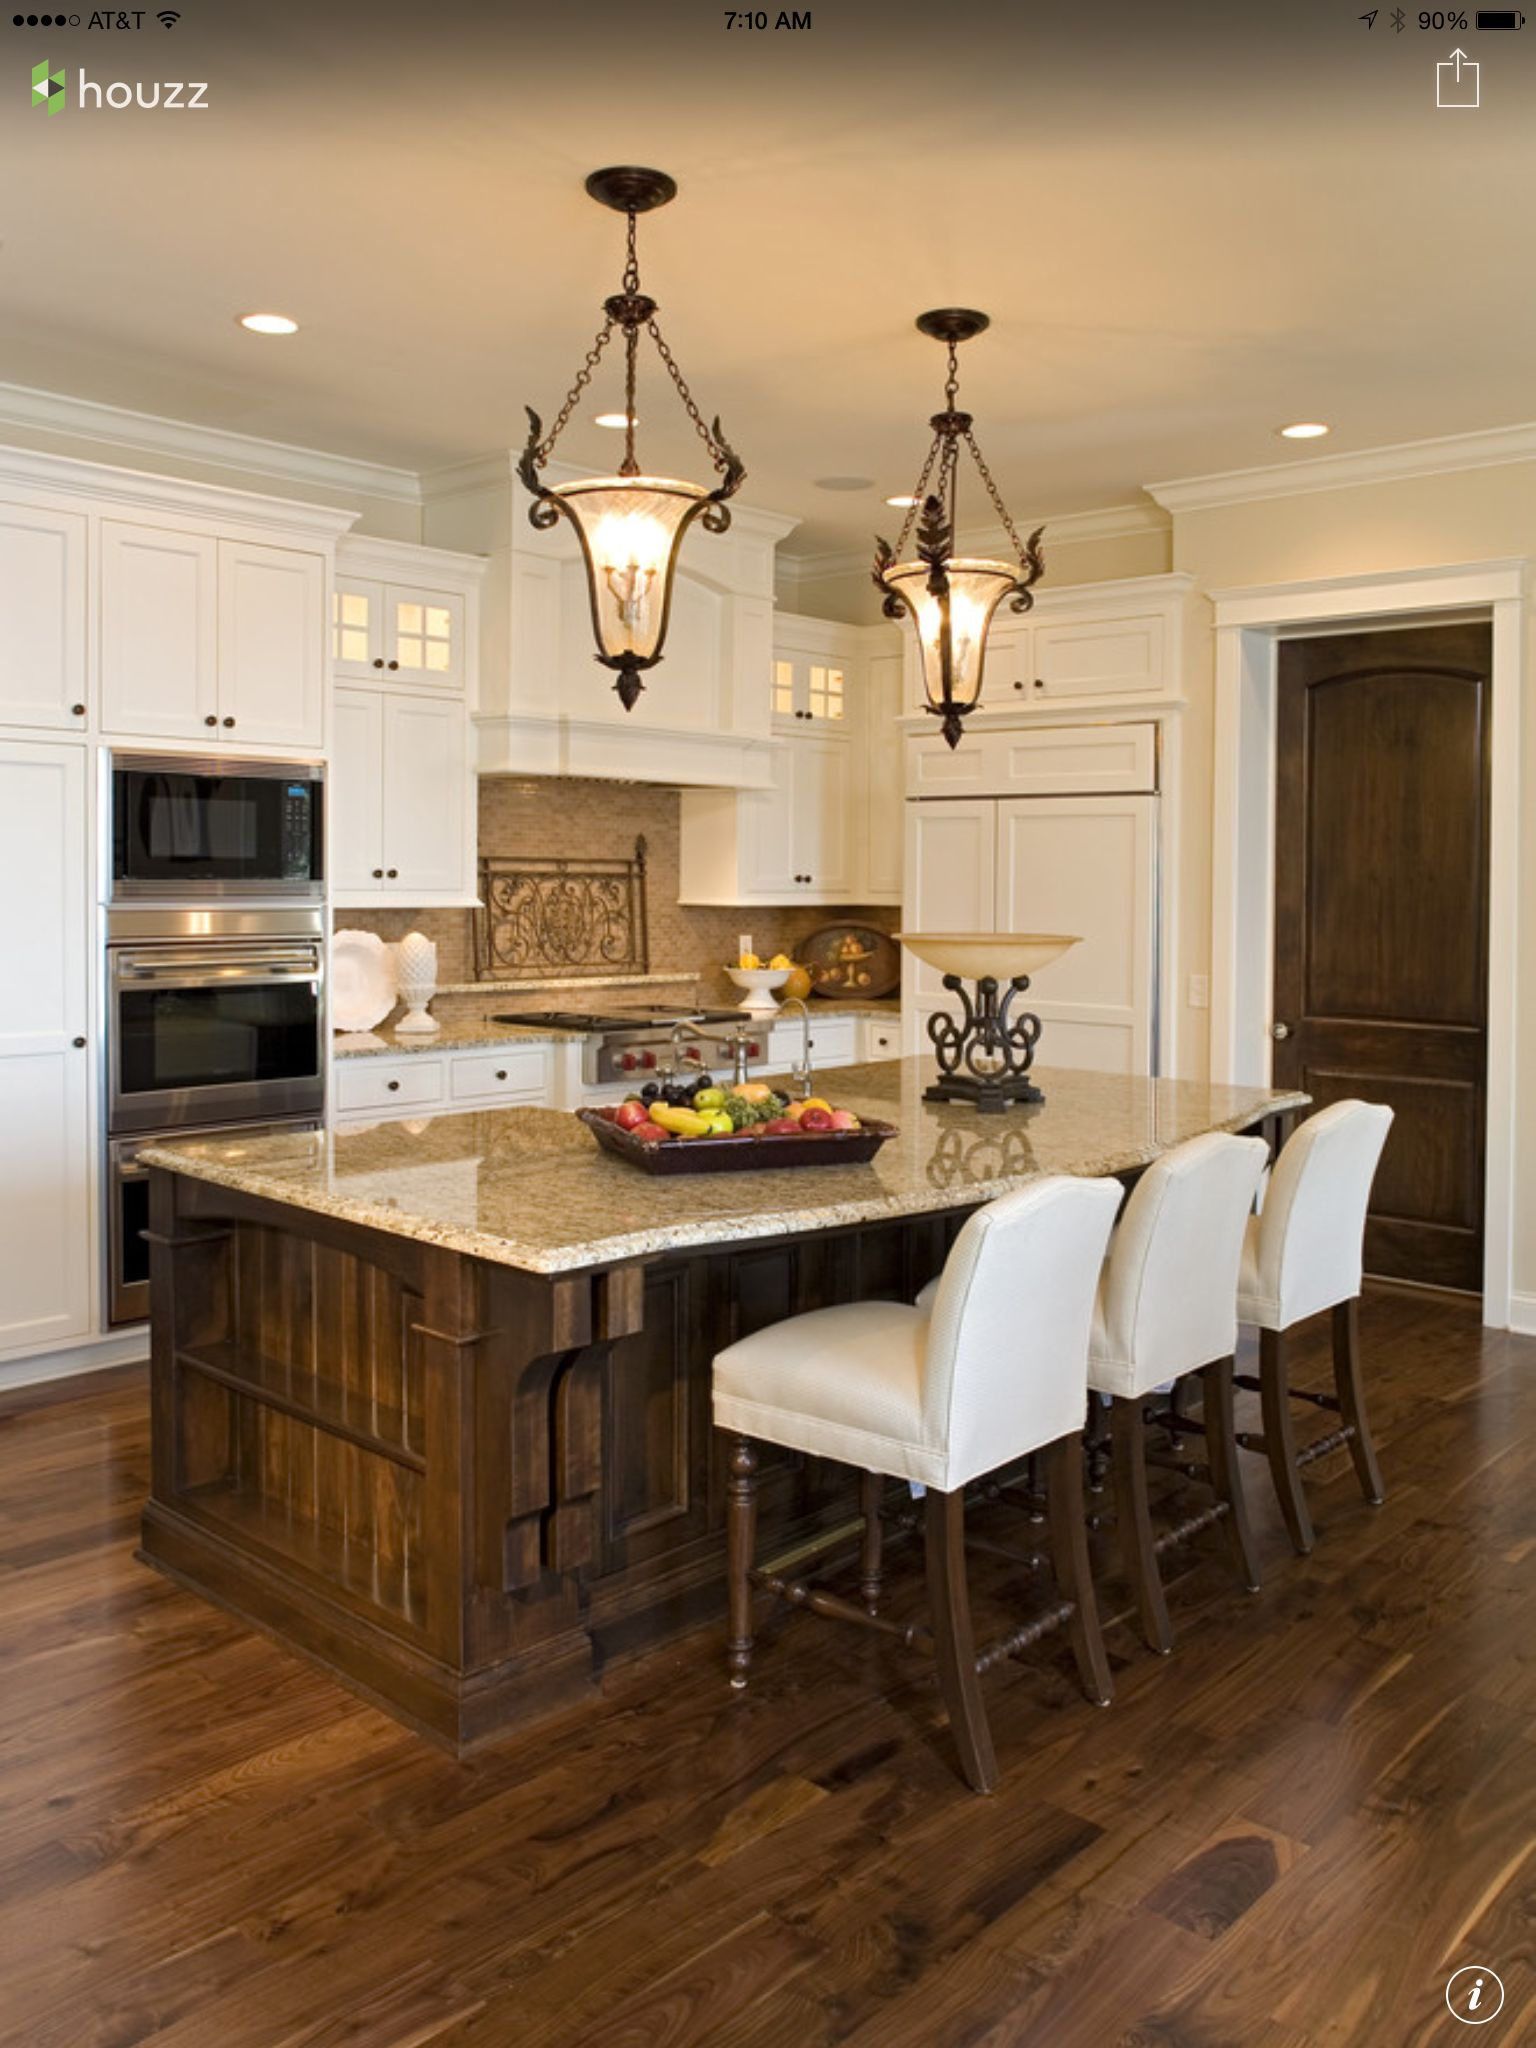 Stonewood Llc Kitchen Houzz Com Hardwood Floors In Kitchen Traditional Kitchen Design Kitchen Flooring